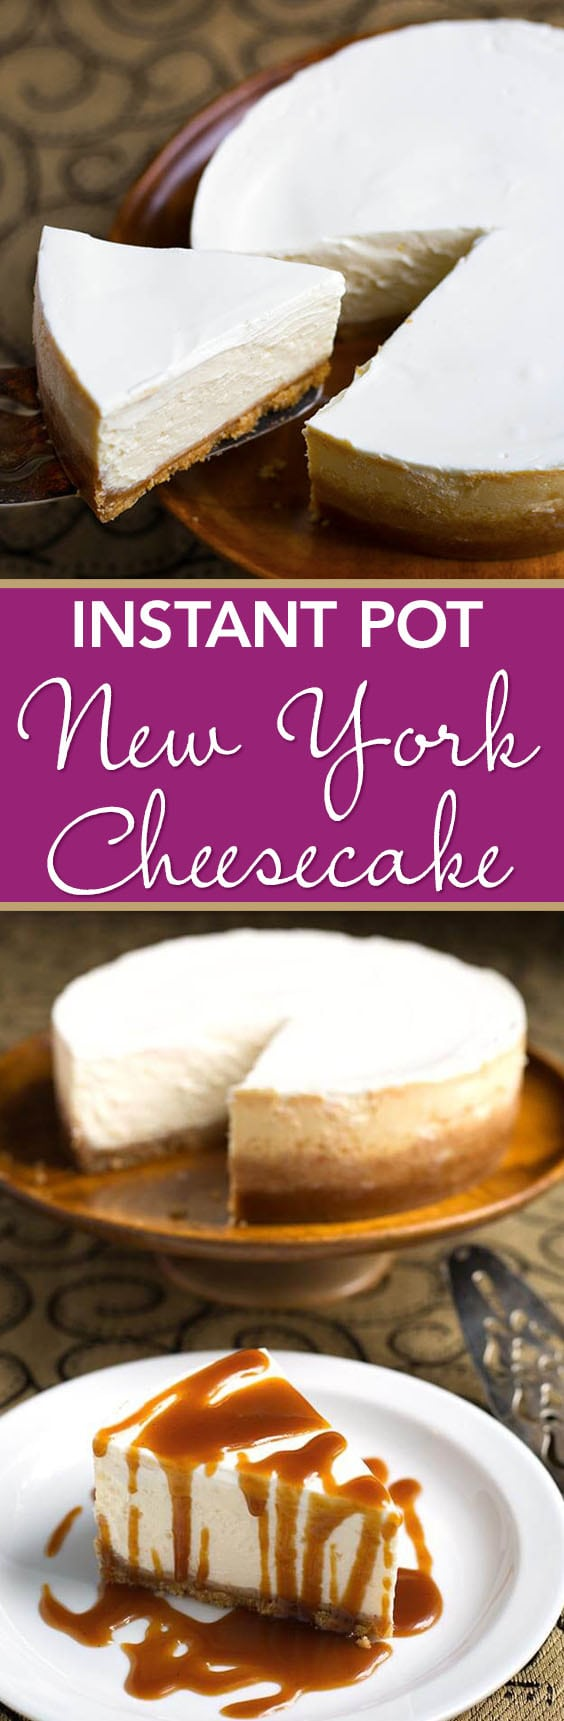 Instant Pot New York Cheesecake is the creamiest and most flavorful New York style cheesecake. Make this cheesecake in your electric pressure cooker! simplyhappyfoodie.com #instantpotrecipes #instantpotcheesecake #instantpotnewyorkcheesecake